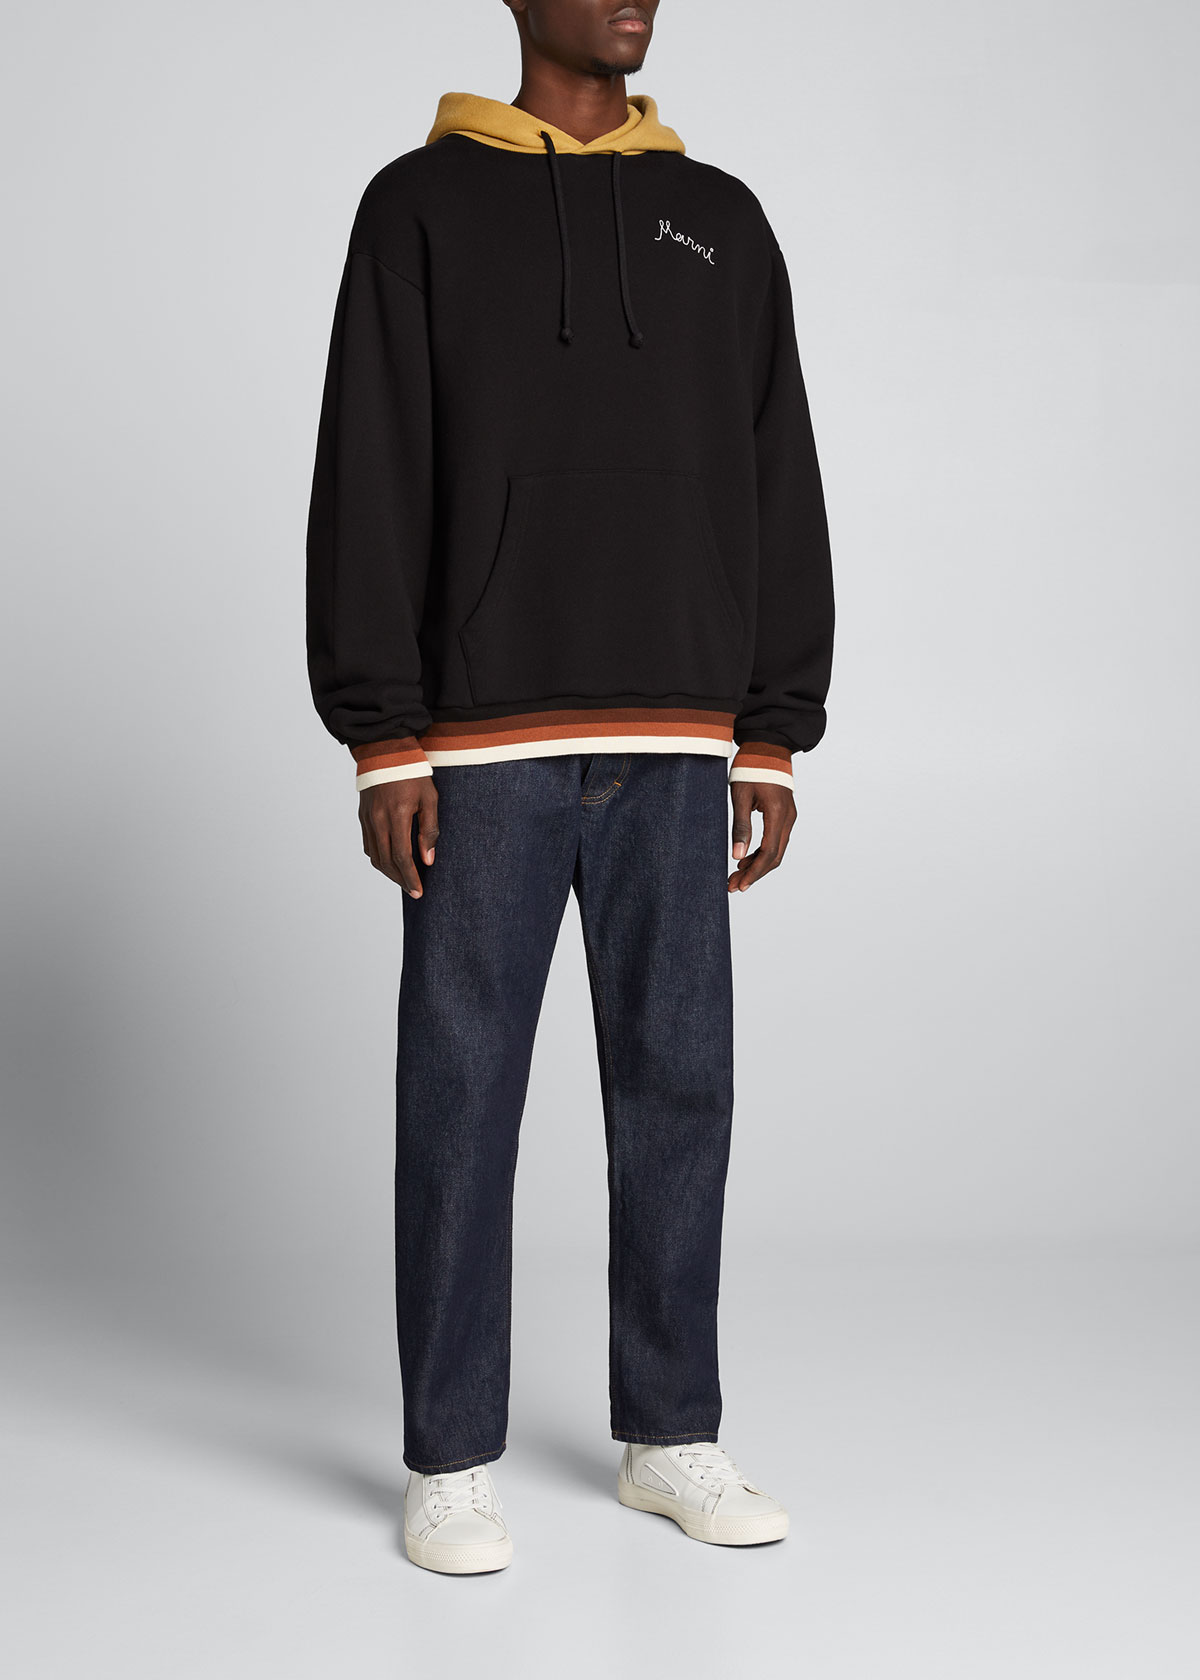 Marni MEN'S SWEAT HOODIE WITH RETRO BANDS